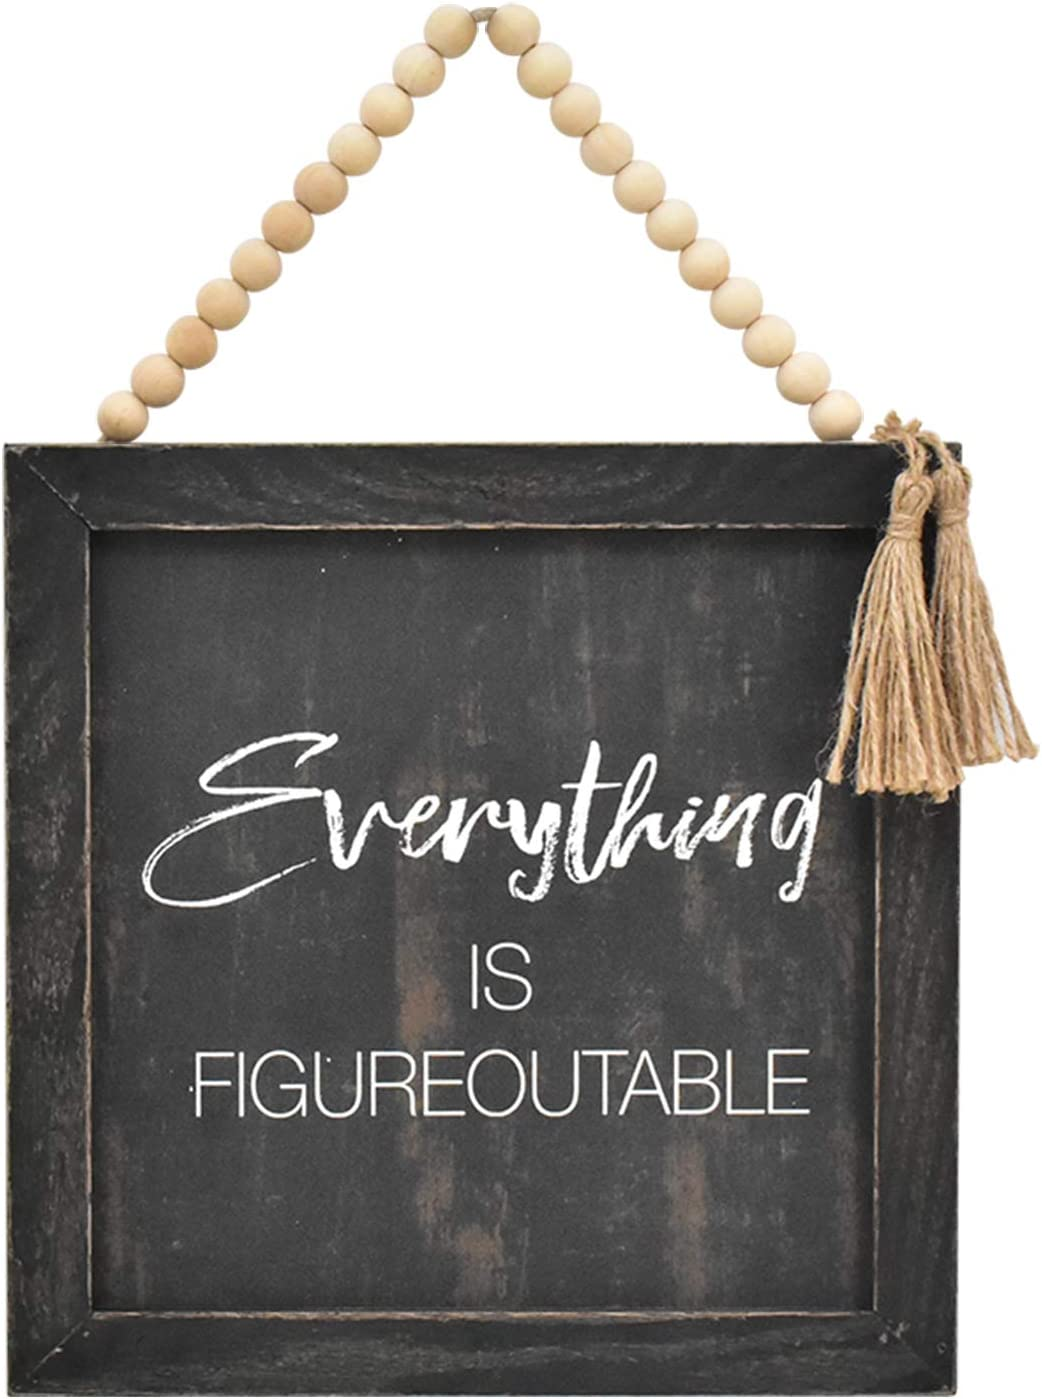 Parisloft Everything is Figureoutable Wood Framed Wall Sign with Wood Bead String Hanger,Rustic Farmhouse Wood Wall Hanging Decor,Black